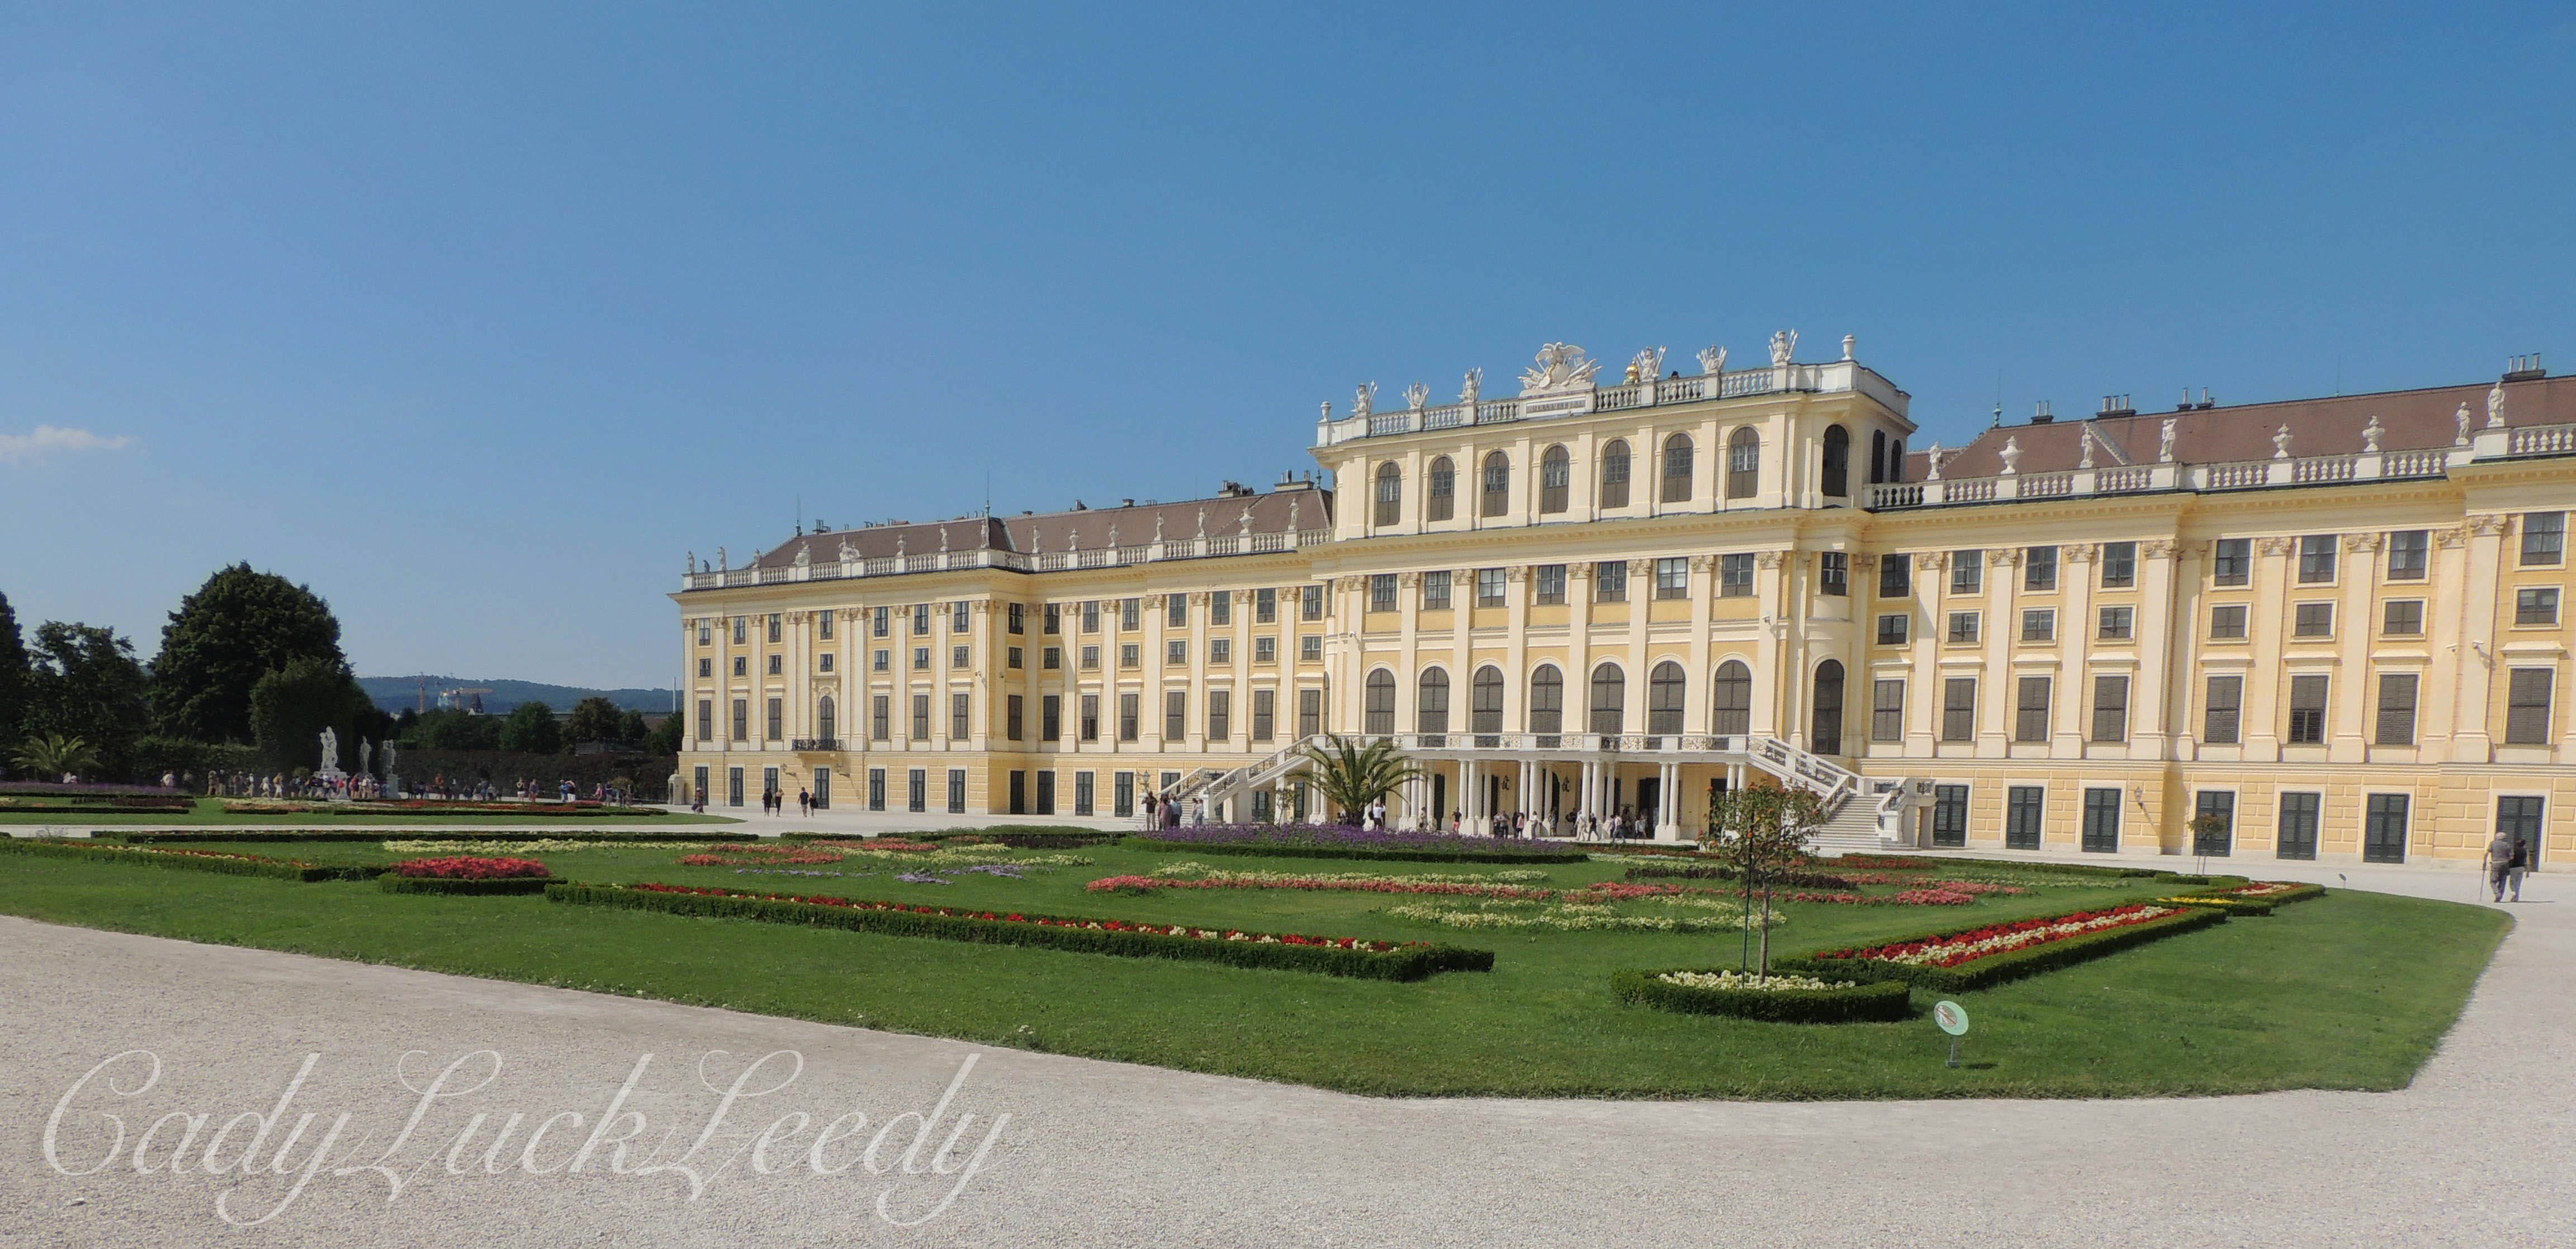 Sch 246 Nbrunn The Big Yellow Palace In Vienna The Travel